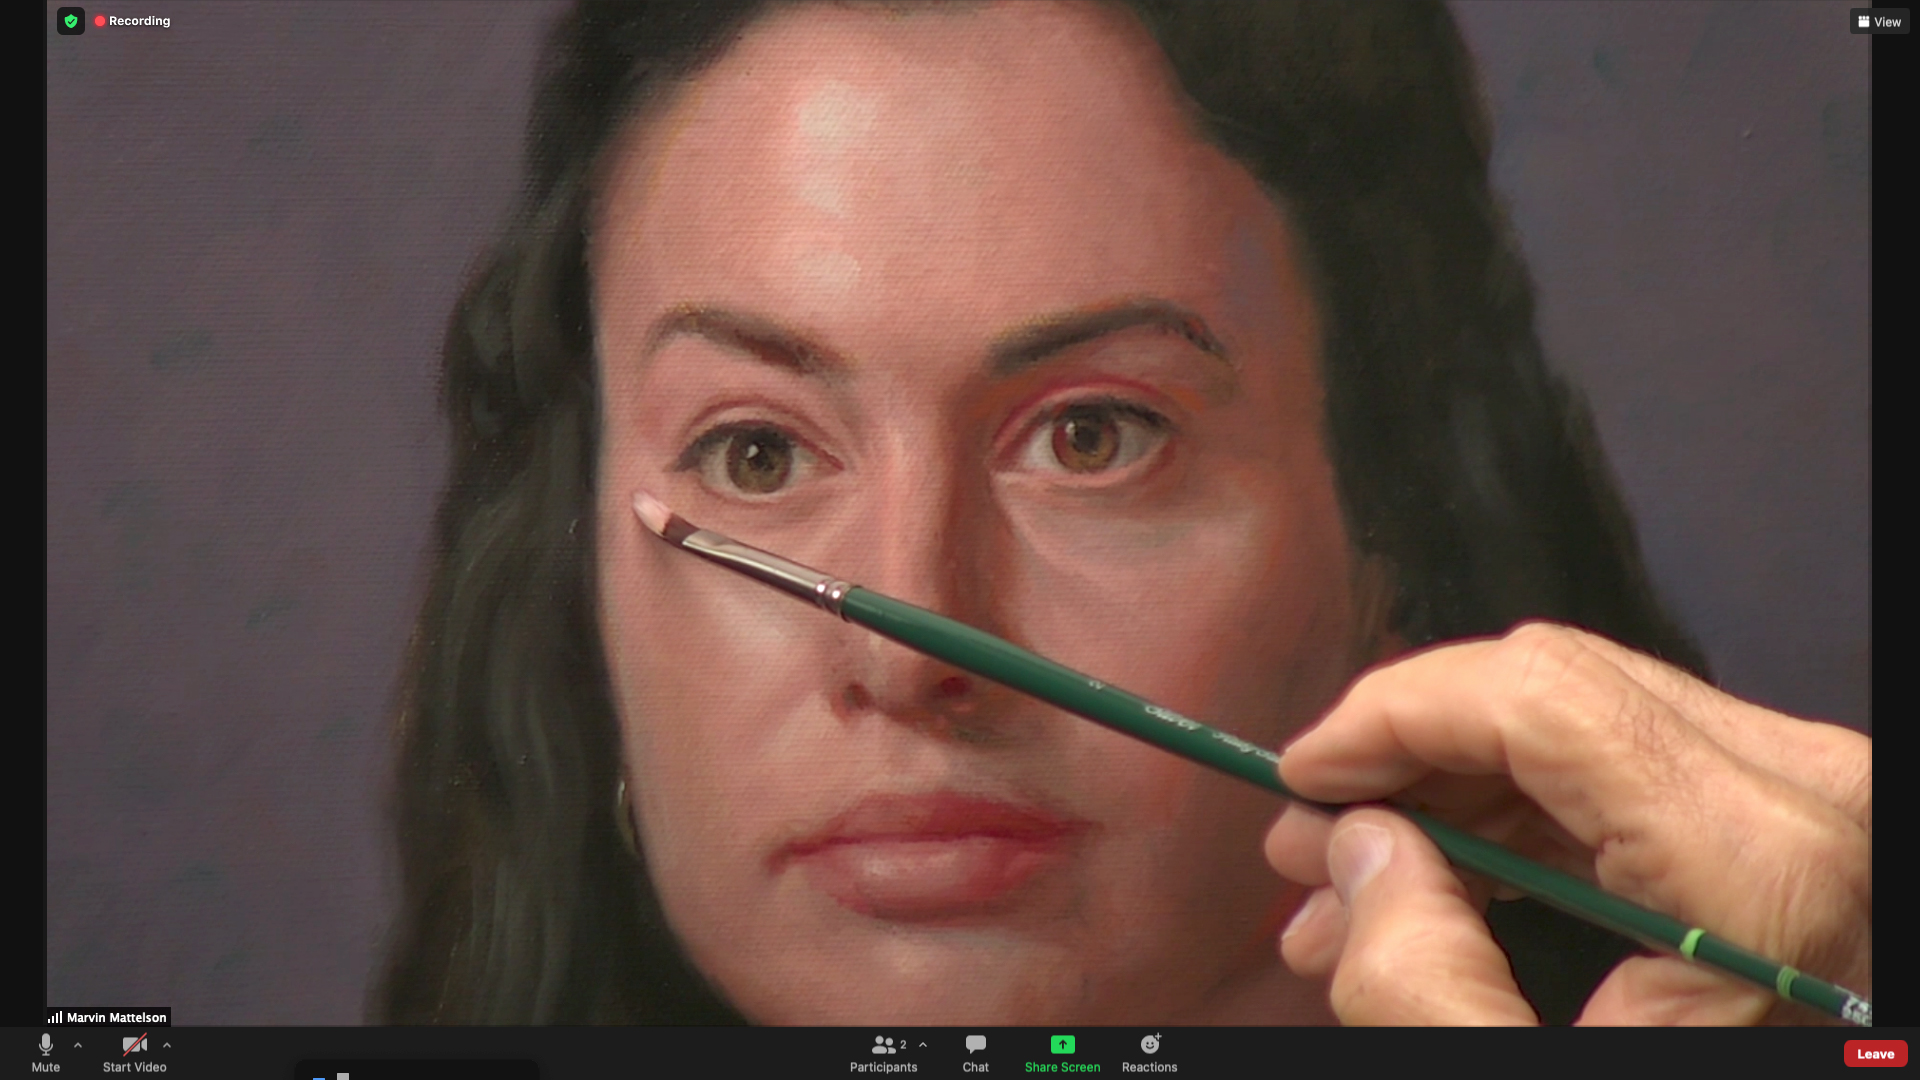 Zoom screen shot of Marvin Mattelson painting a demo.